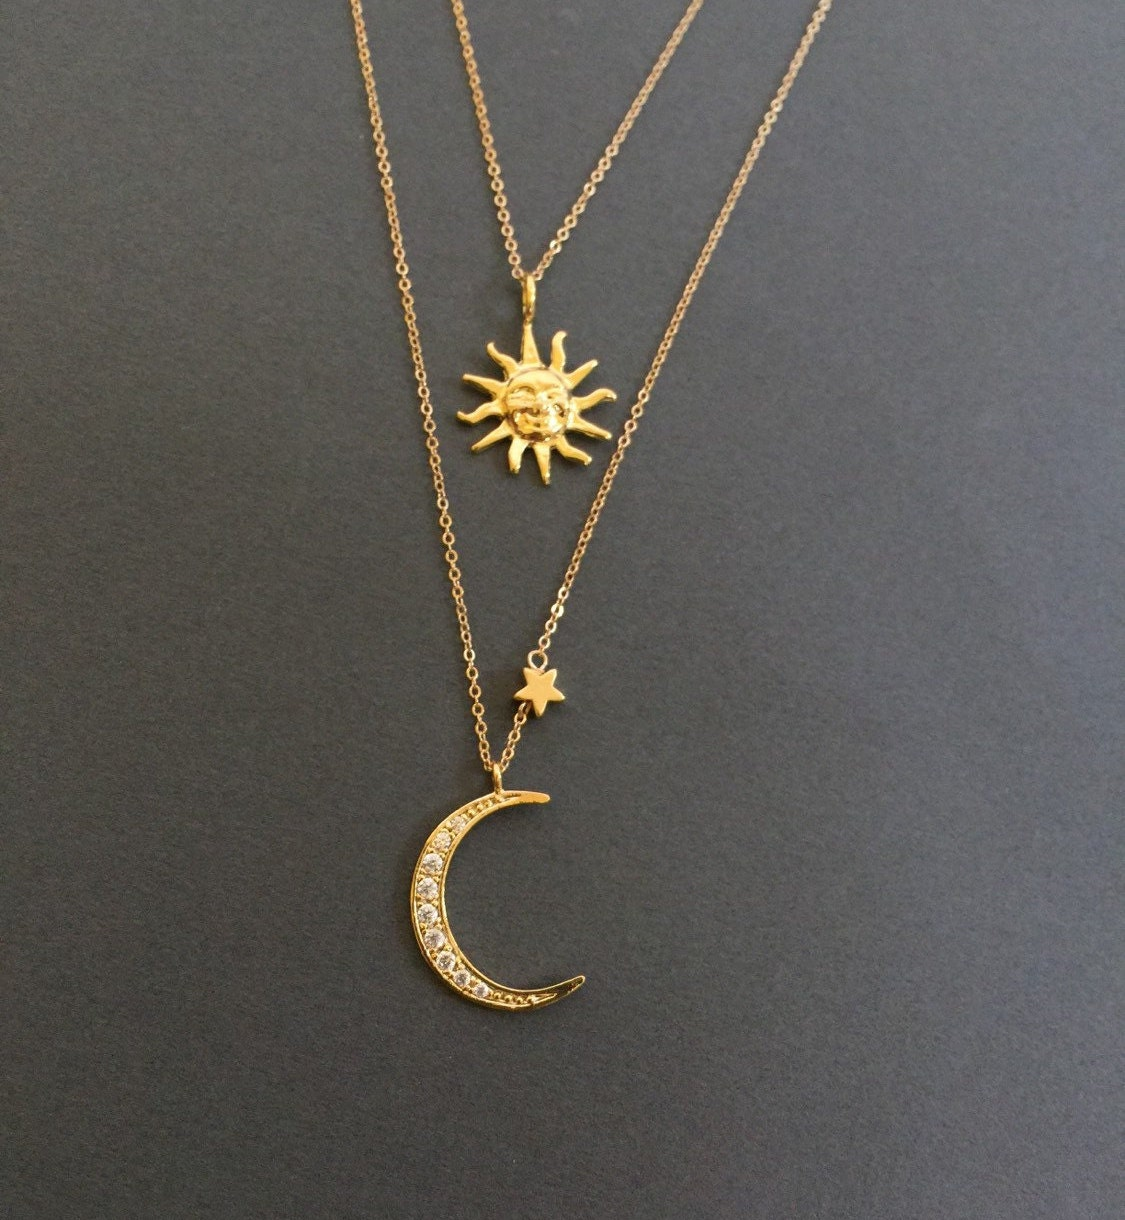 Sun and Crescent Moon Necklace Double Layered Necklace 18k